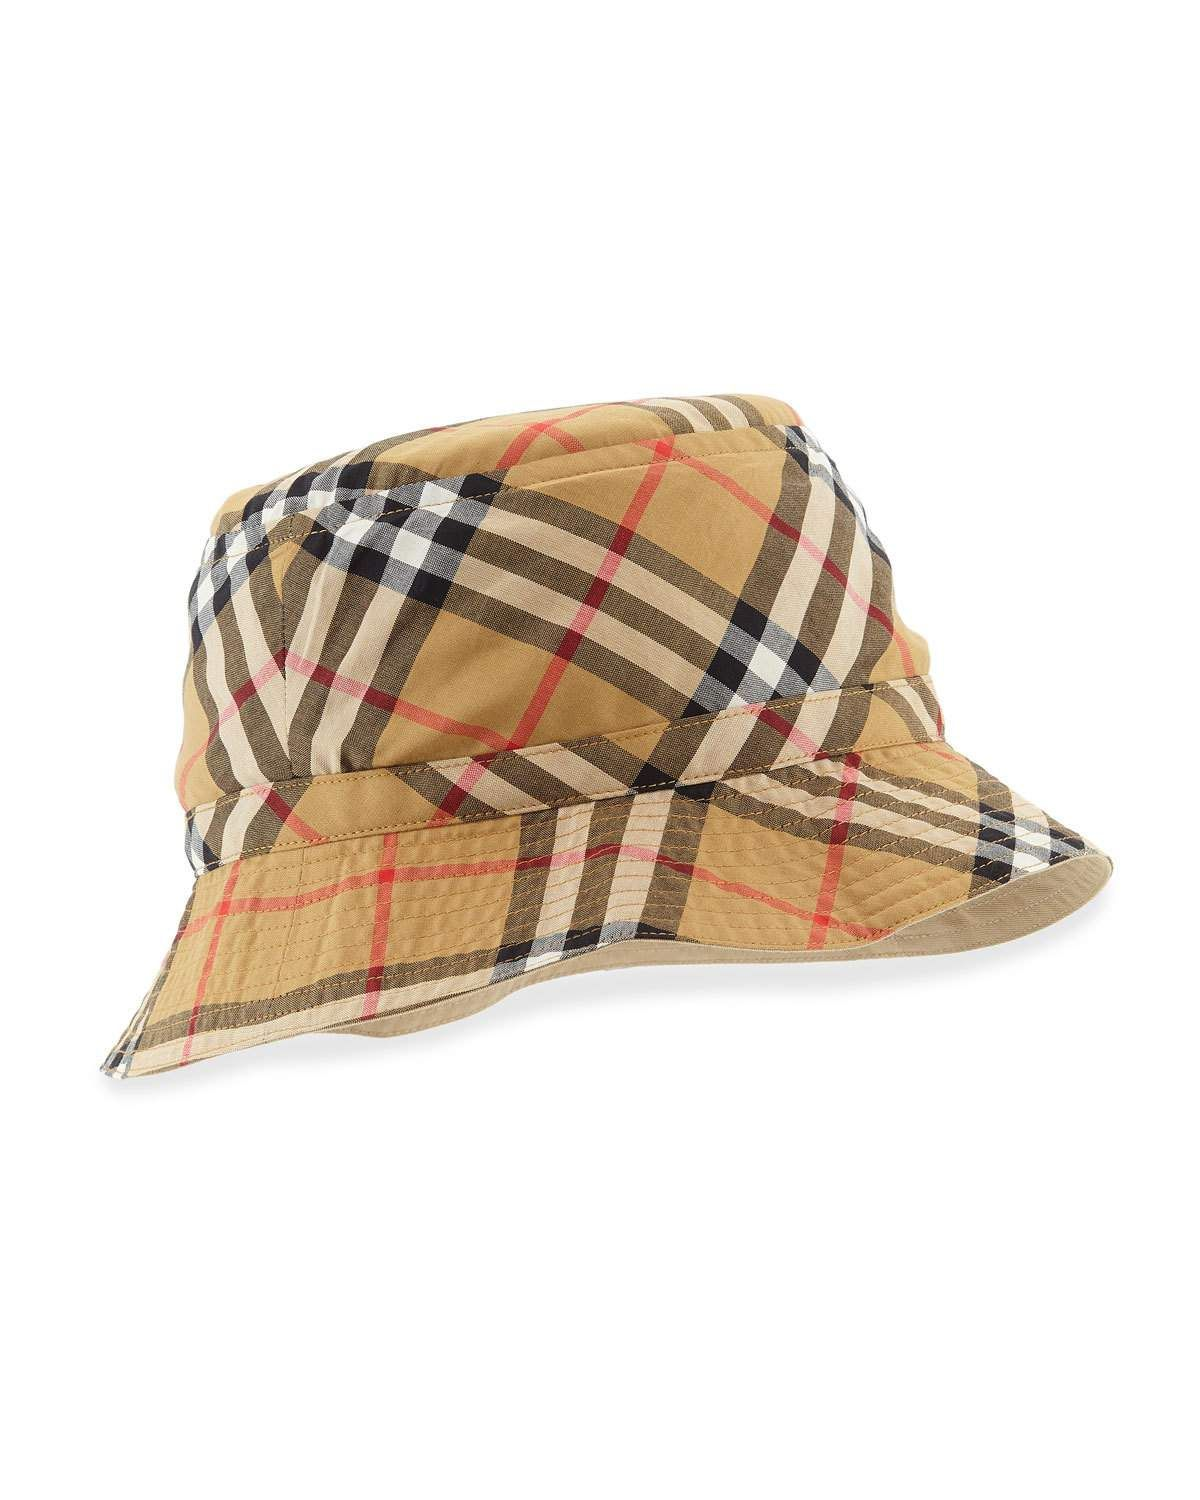 eab8a44e9b55f Burberry Vintage Check Bucket Hat